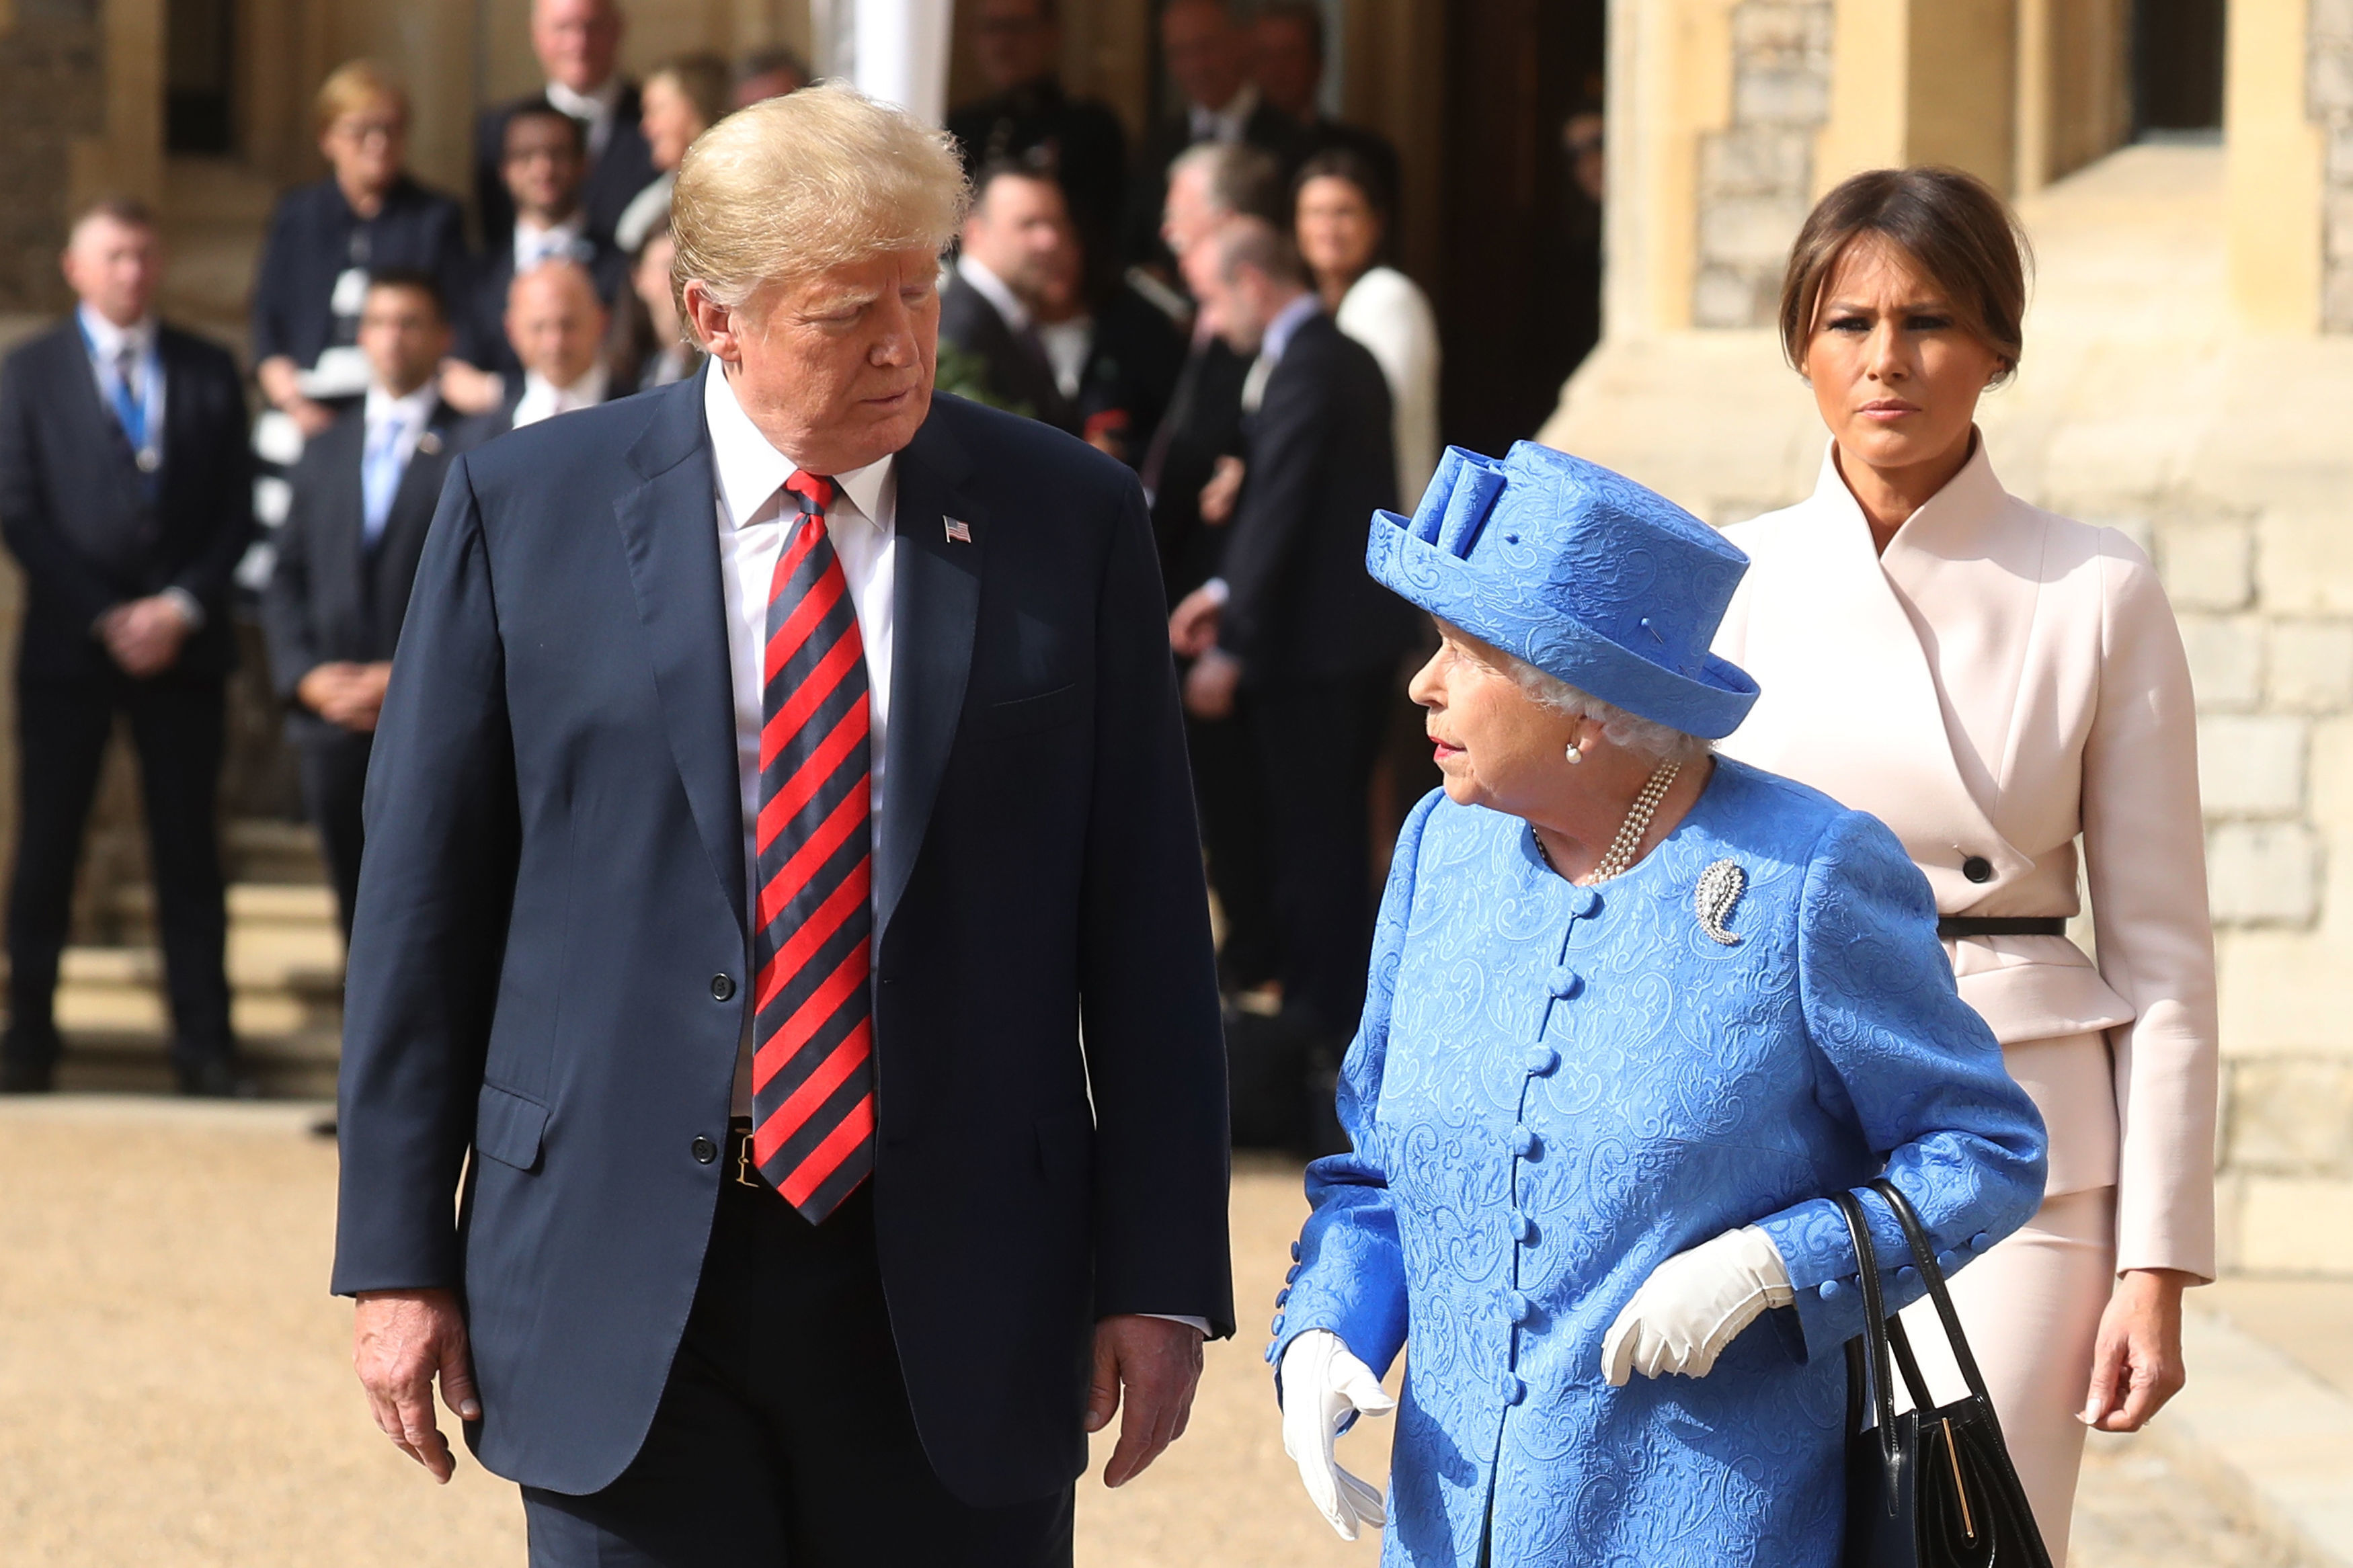 Trump's officials announce state visit by calling Queen 'Her ROYAL Majesty'